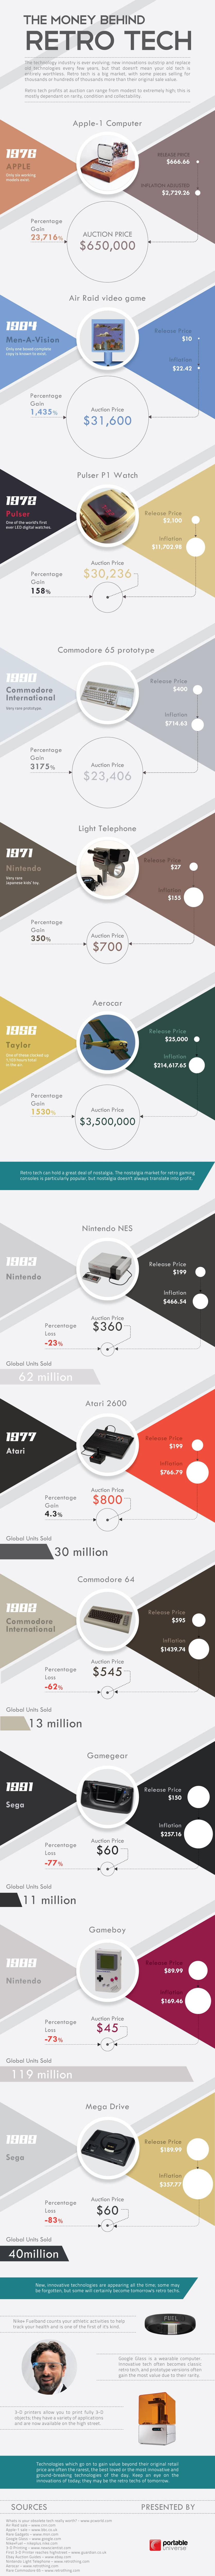 value-of-retro-tech-infographic